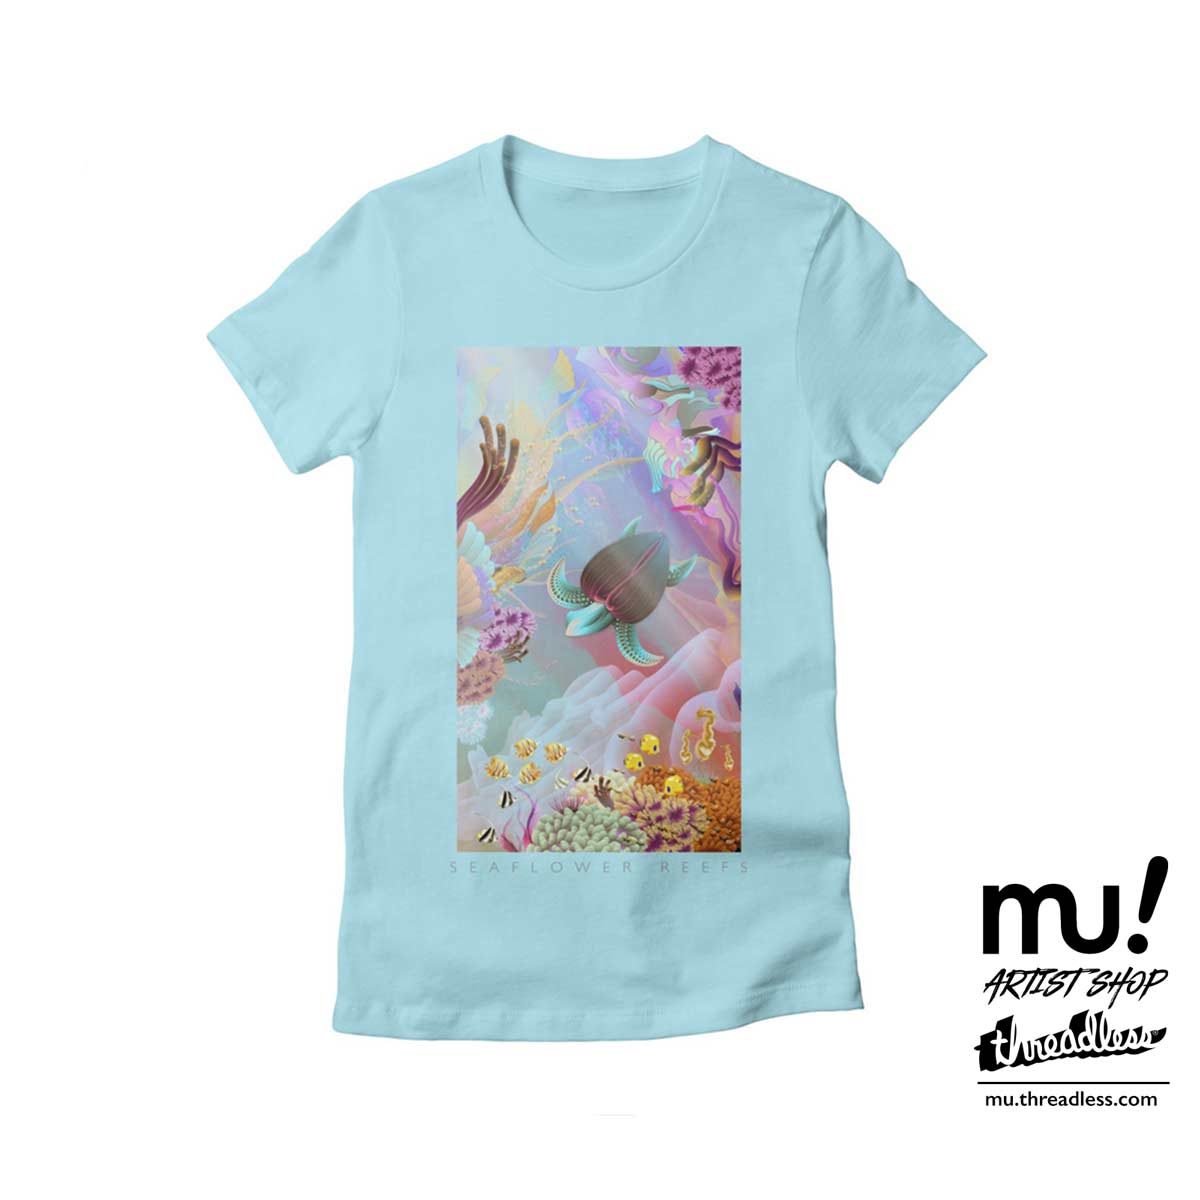 seaflower_reefs_mu_studio_sebastian_murra_shirt-logo_threadless_web_v2